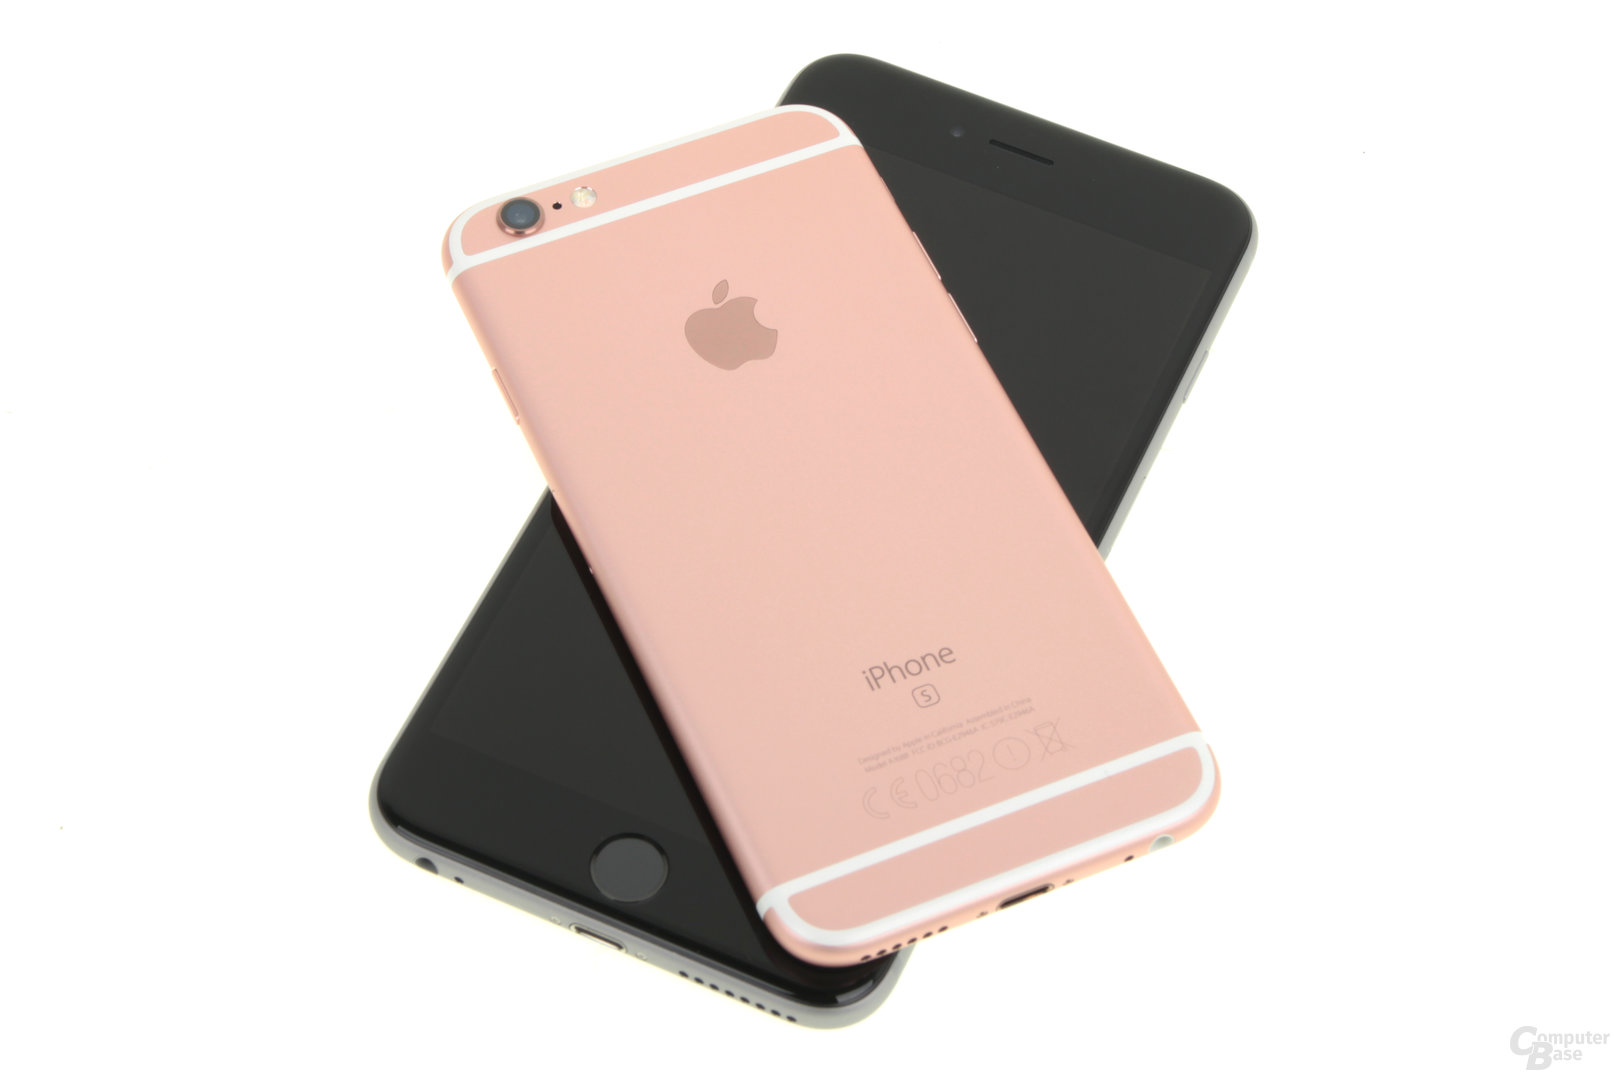 Apple iPhone 6s Roségold auf iPhone 6s Plus